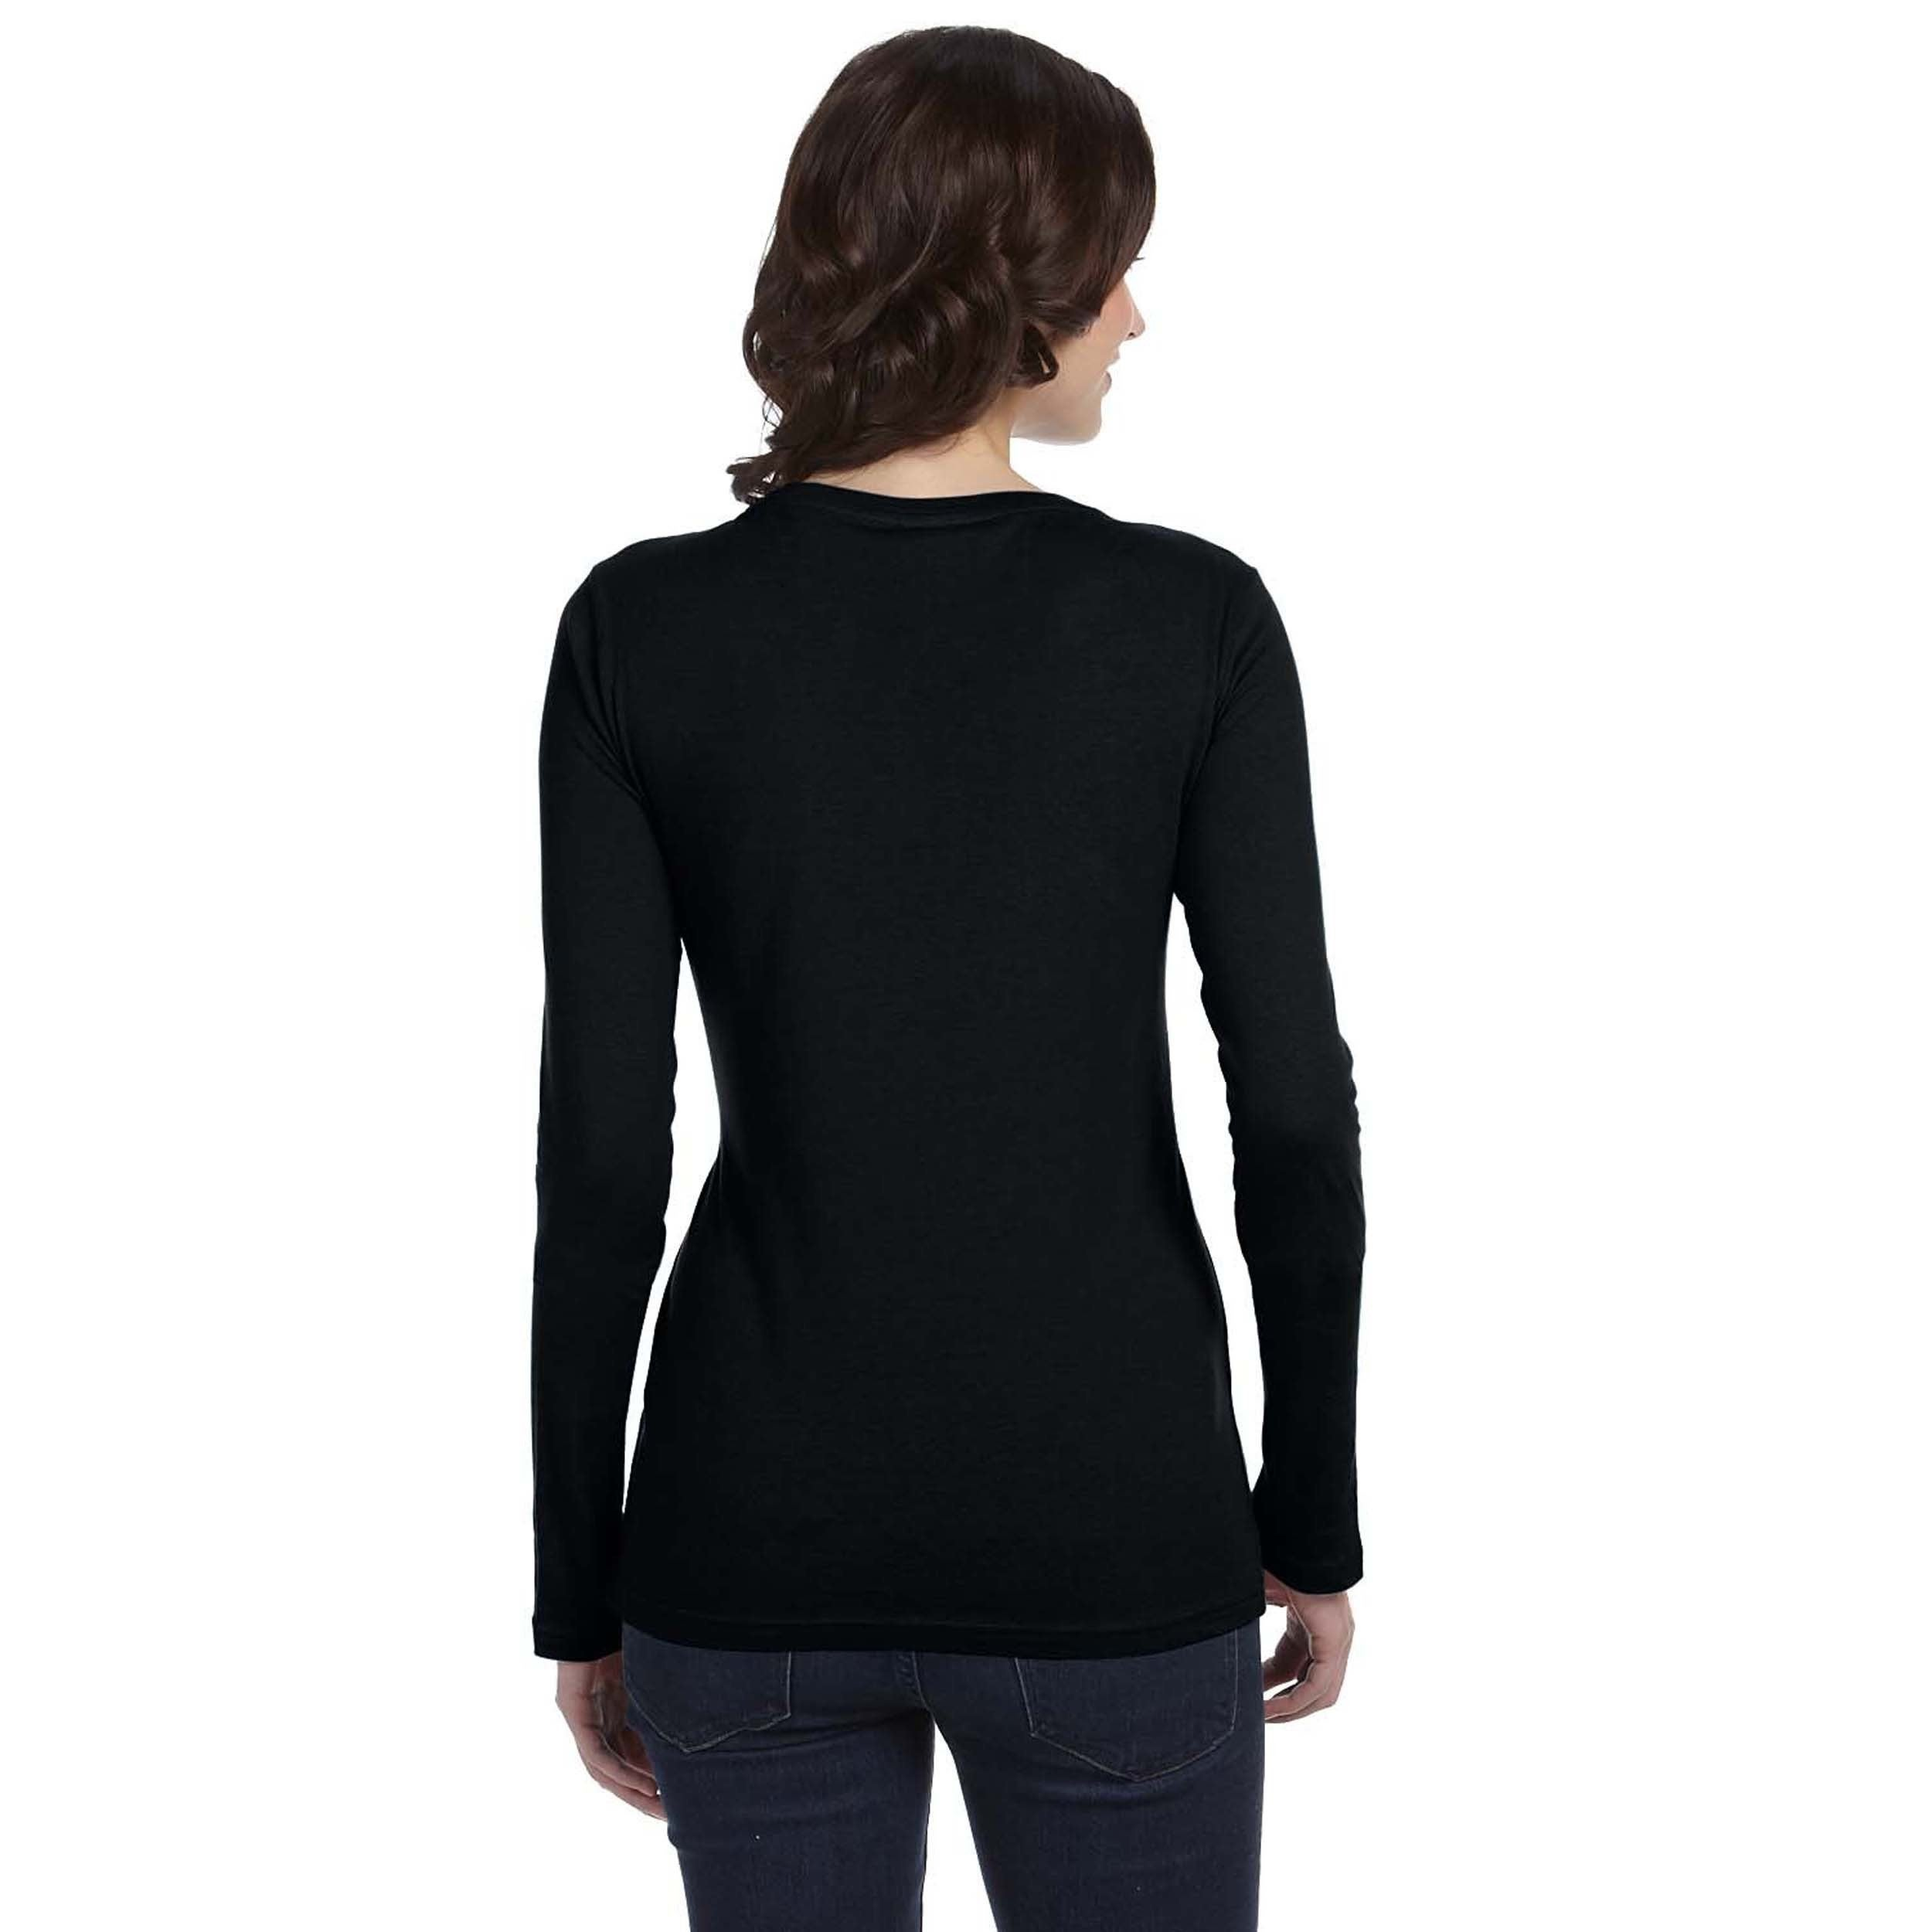 9d6272ec Shop Anvil Women's Sheer Long Sleeve Scoop Neck T-shirt - On Sale - Free  Shipping On Orders Over $45 - Overstock - 8935254